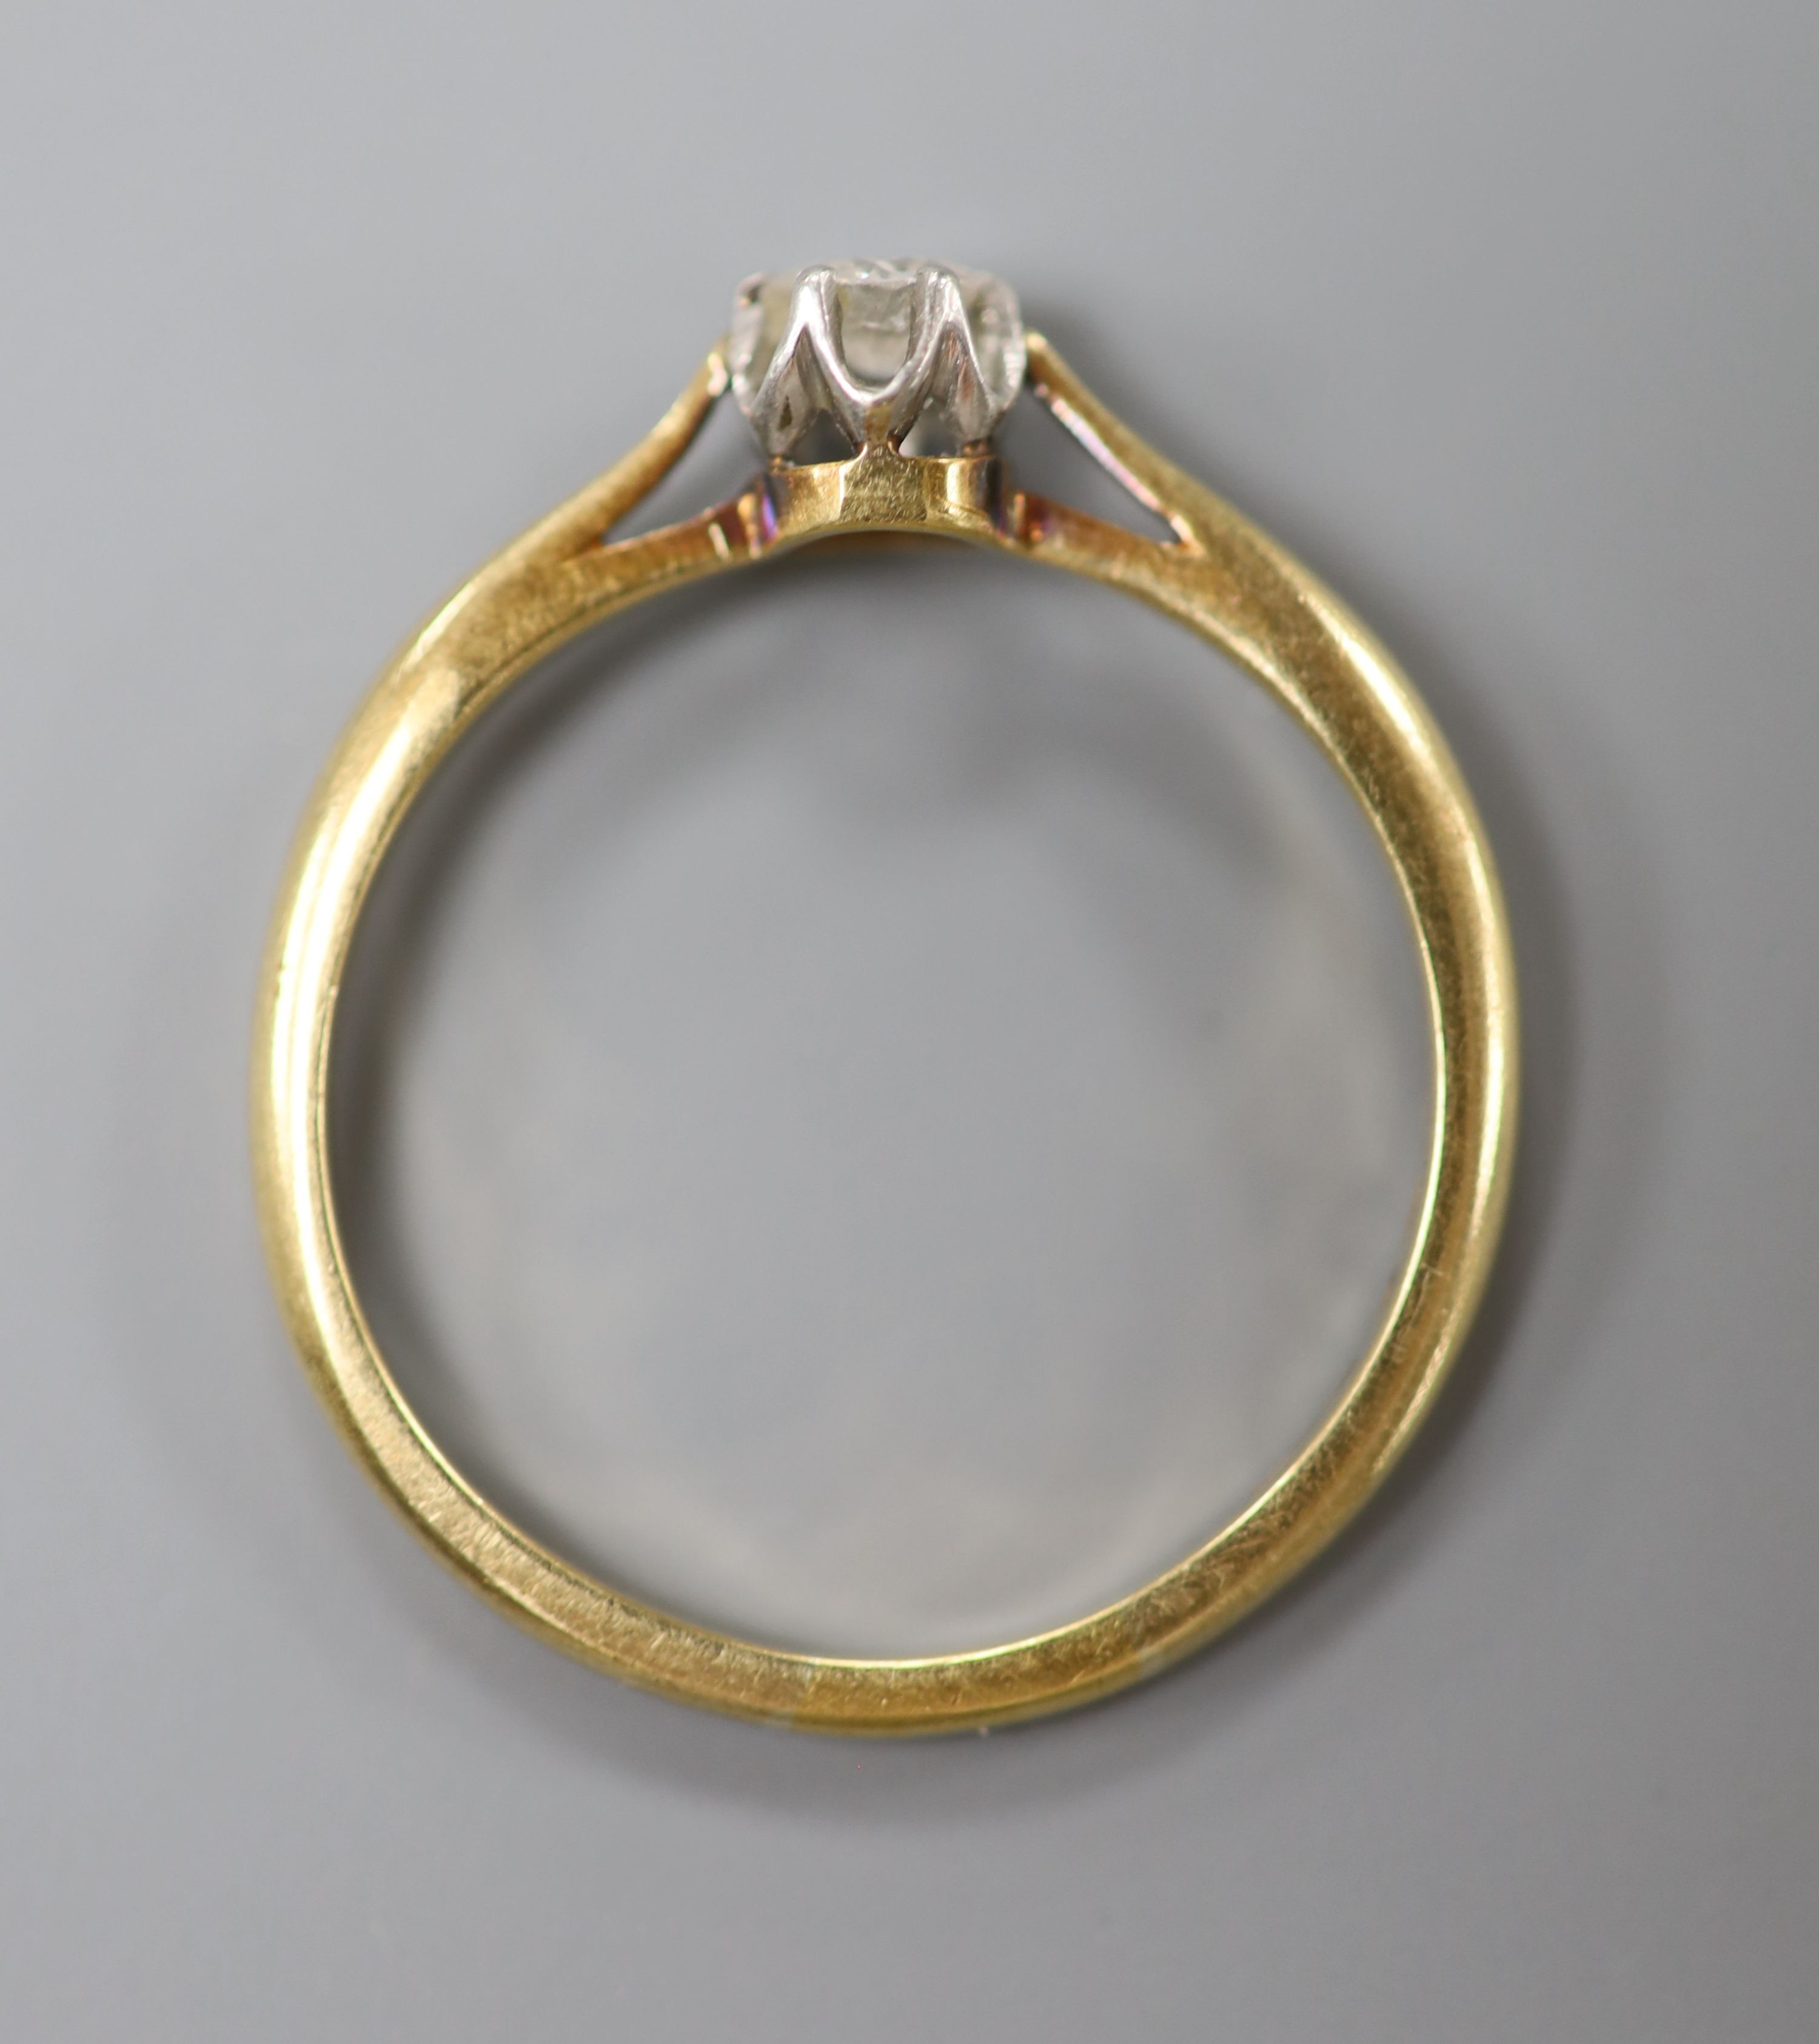 An 18ct and solitaire diamond ring, size Q, gross 2.5 grams, the stone weighing approximately 0. - Image 3 of 3